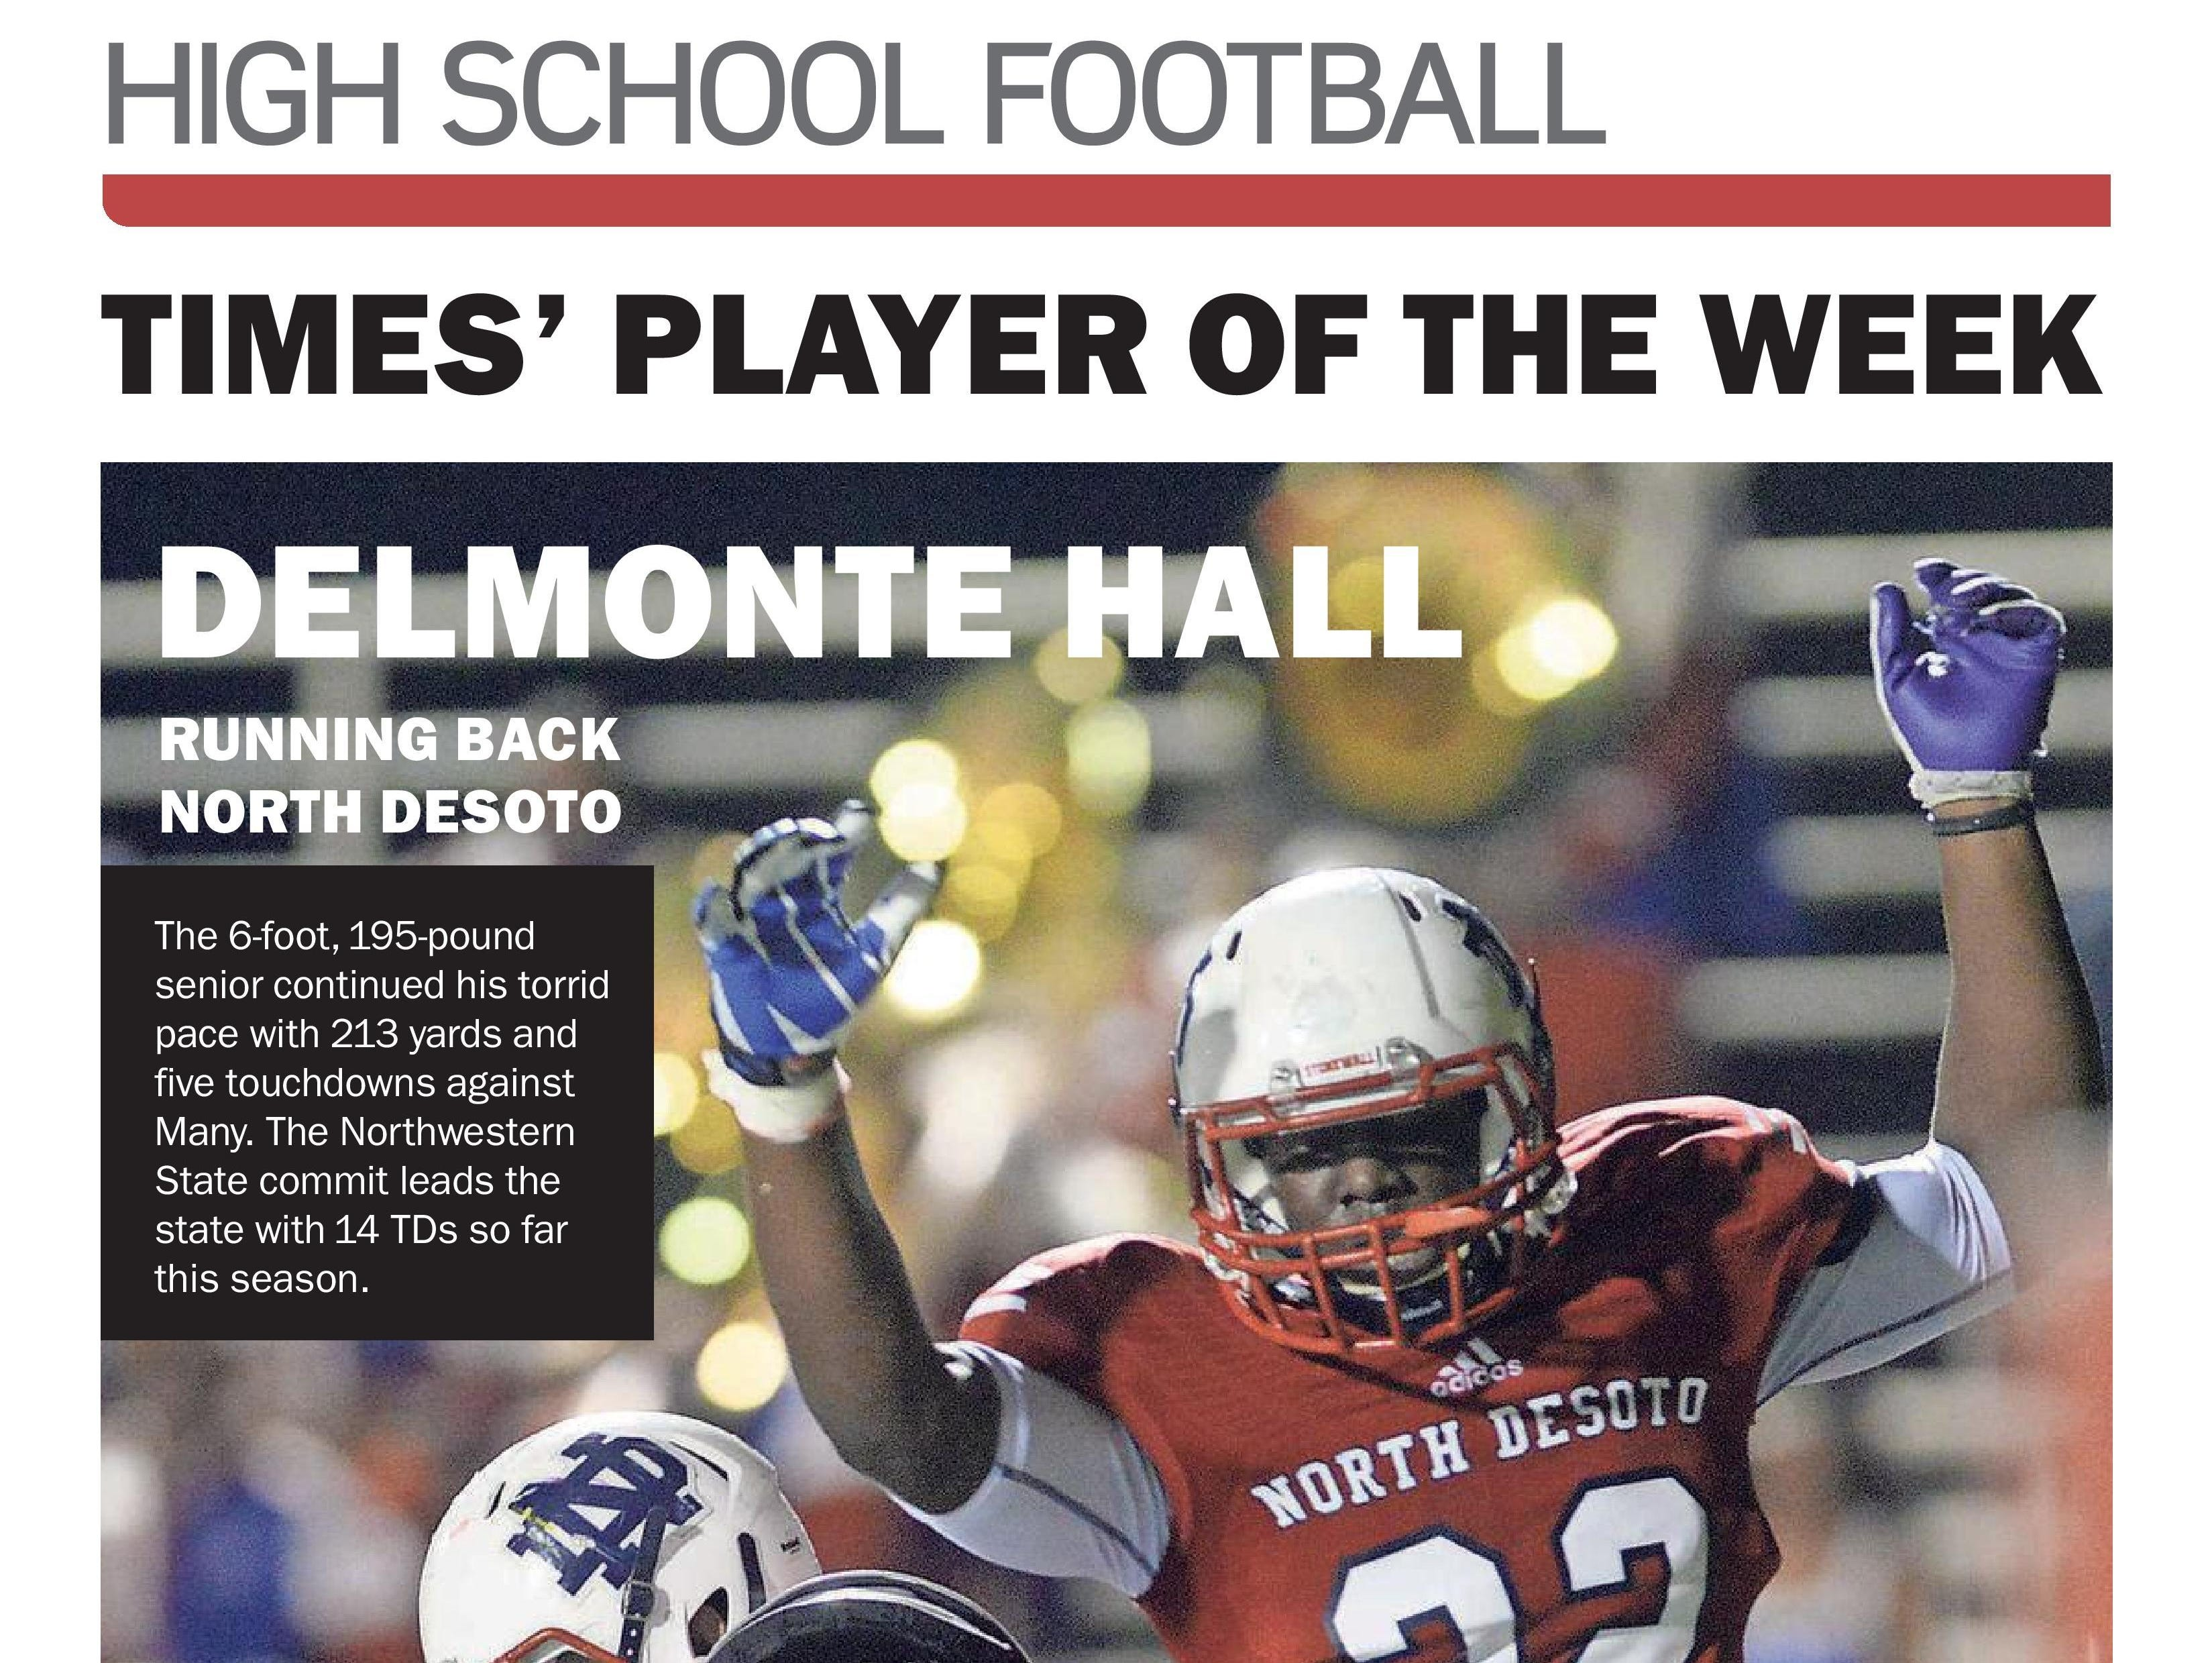 North DeSoto's Delmonte Hall was voted the Player of the Week in Week 3.